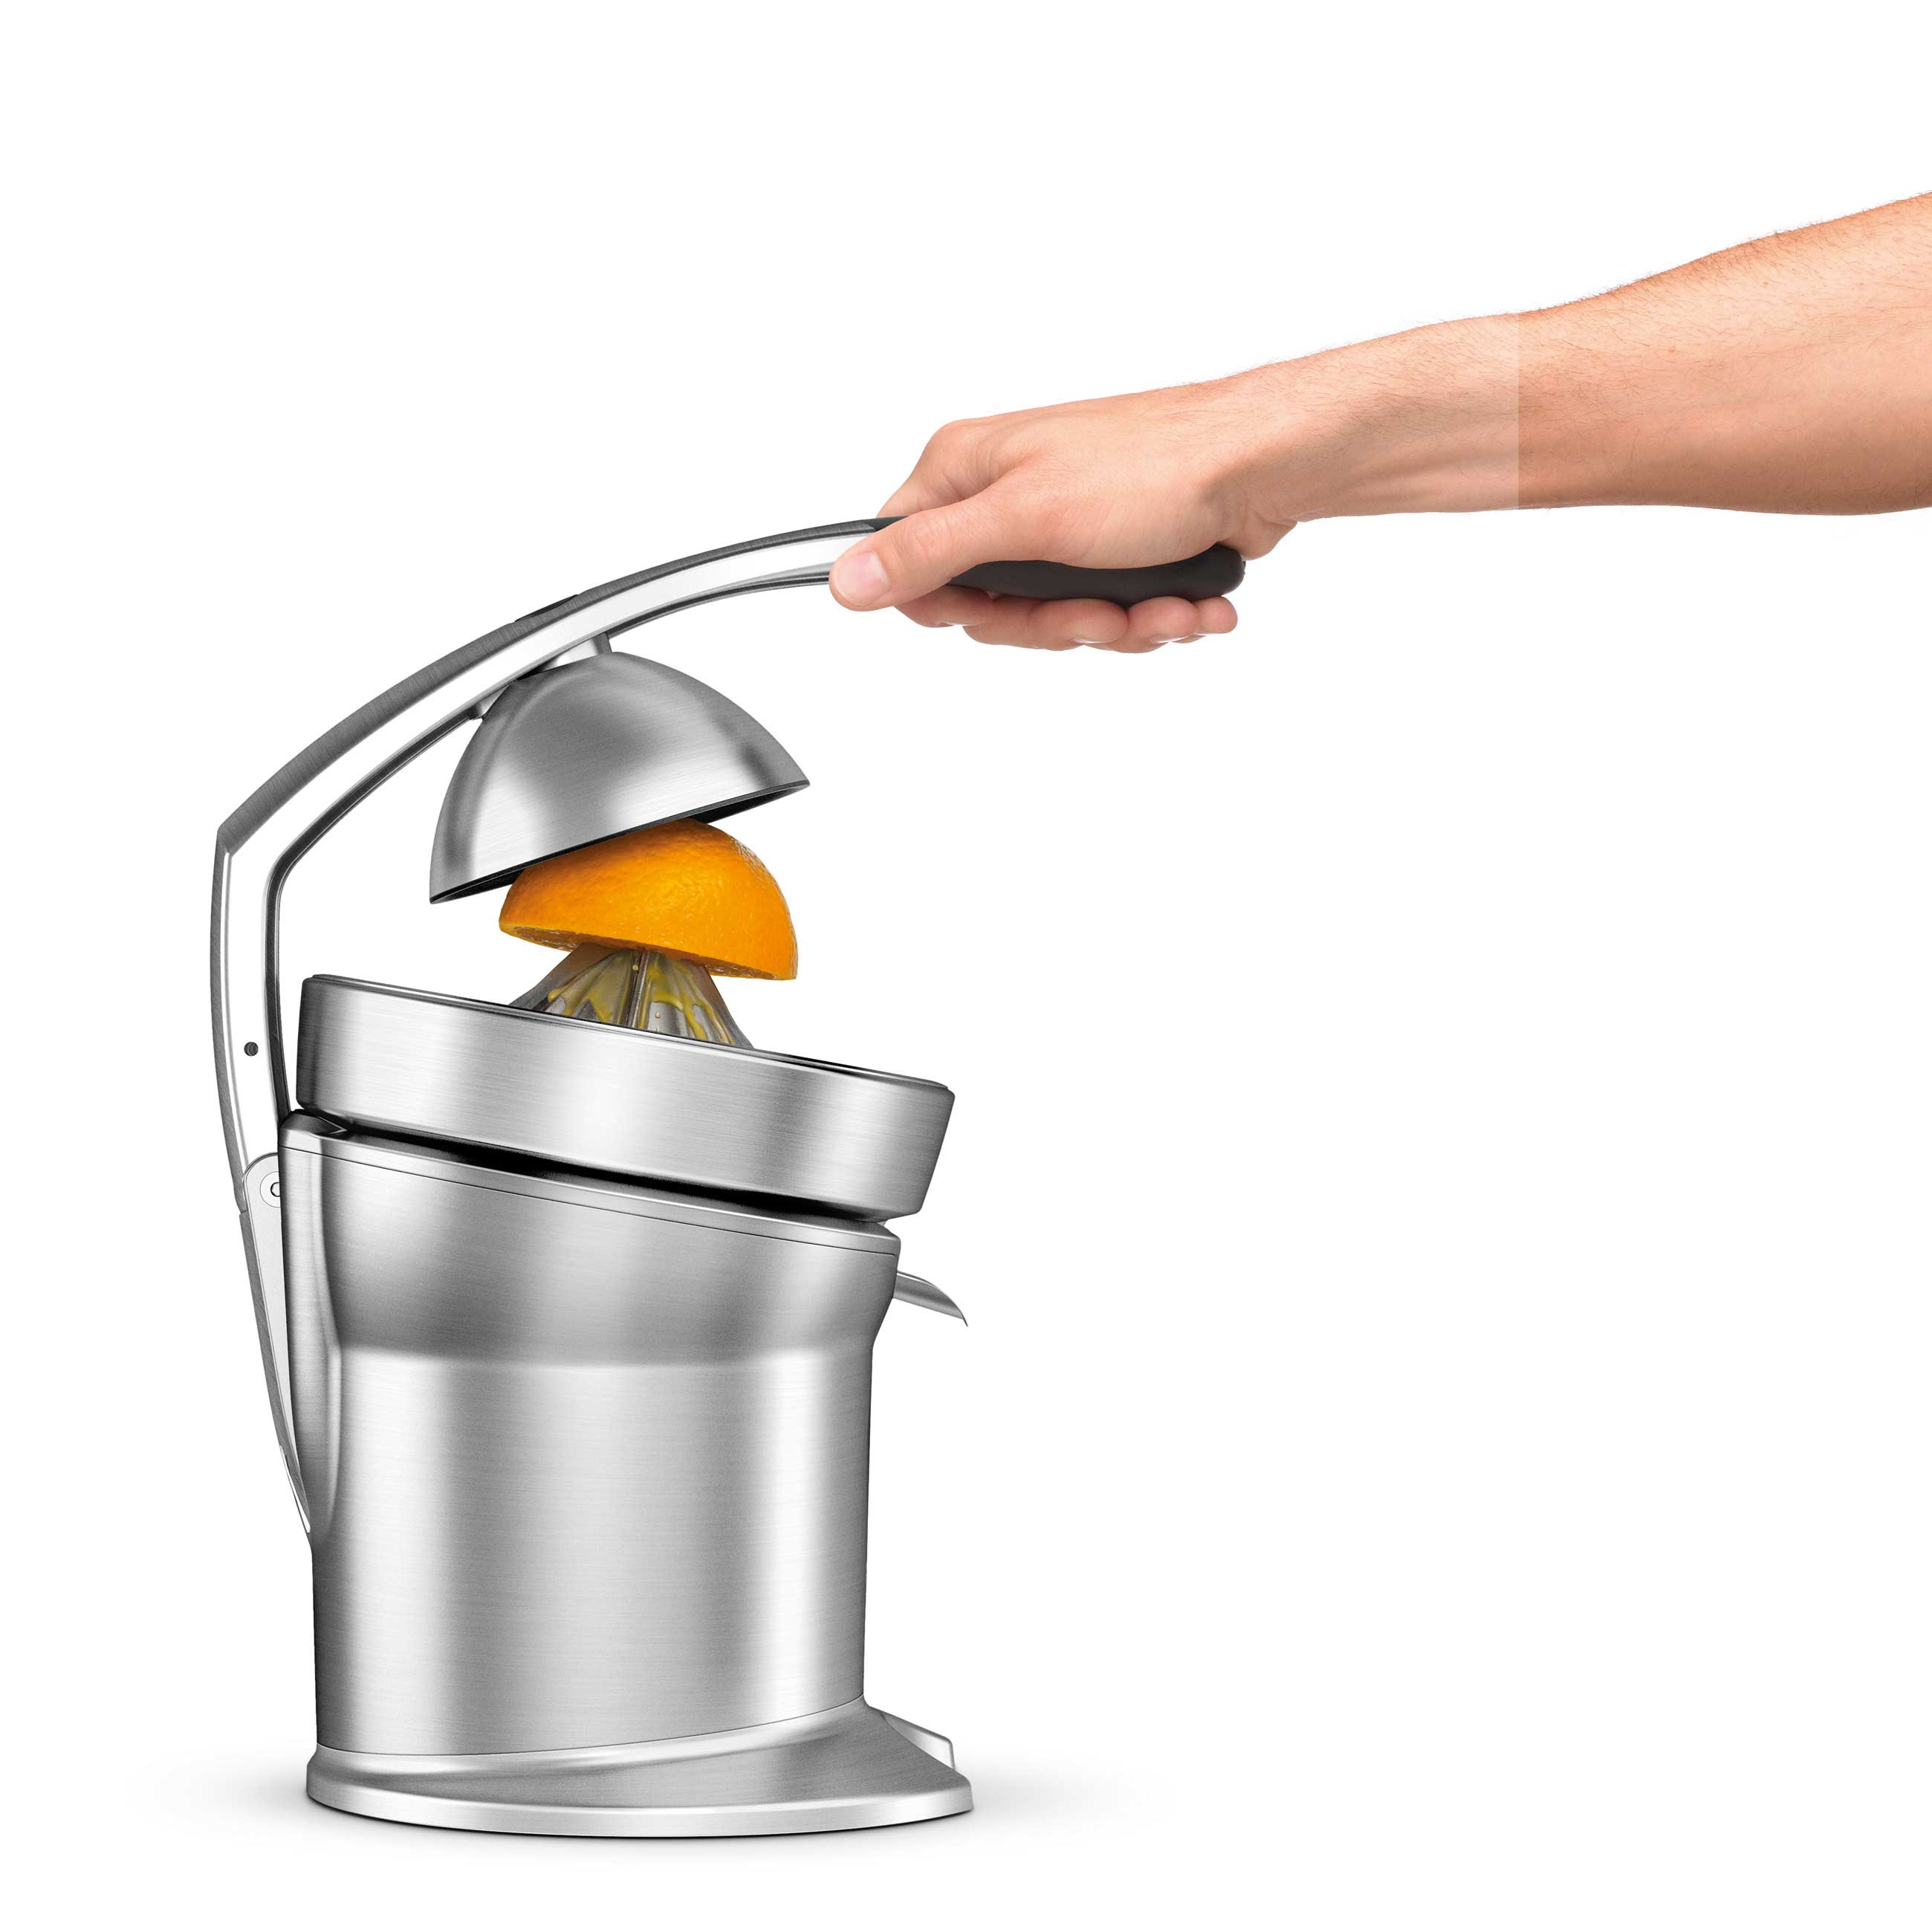 the Citrus Press™ Pro Juicers in Silver acid resistant die-cast cone